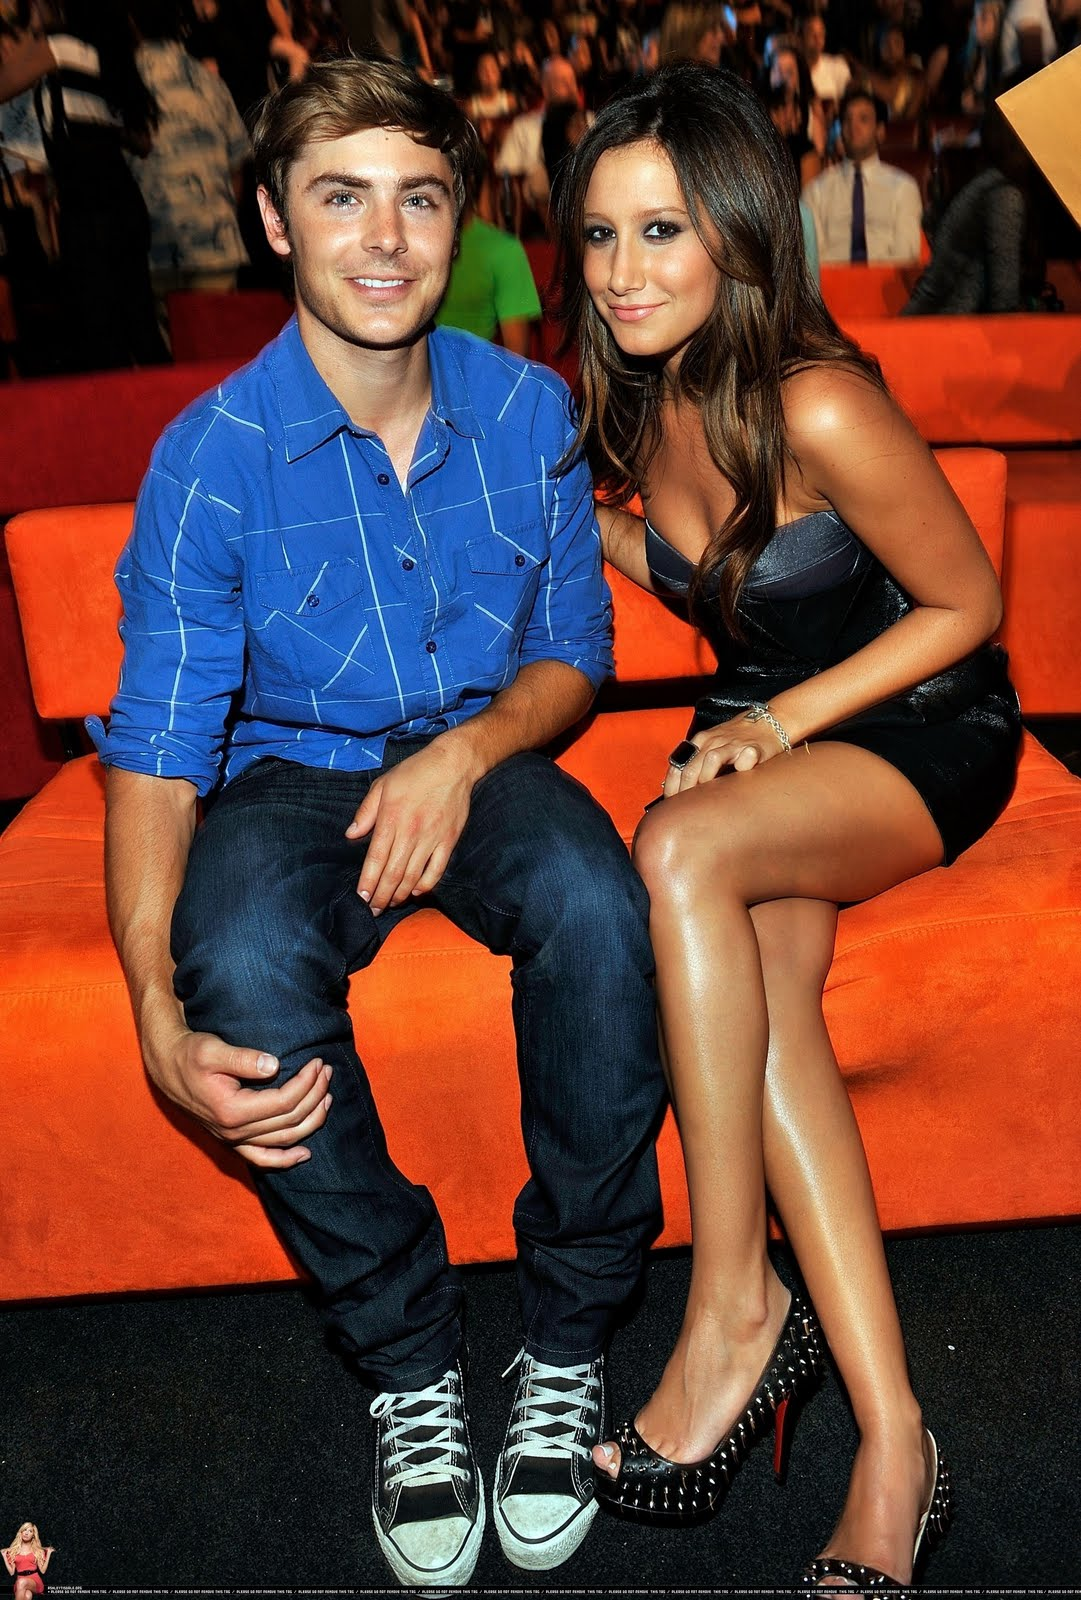 http://4.bp.blogspot.com/-8fzLuSkbKx4/TbdXOYHZtQI/AAAAAAAAAgk/jsm1JotzZsQ/s1600/Teen-Choice-Awards-zac-efron-and-ashley-tisdale-7587580-1730-2560%255B1%255D.jpg